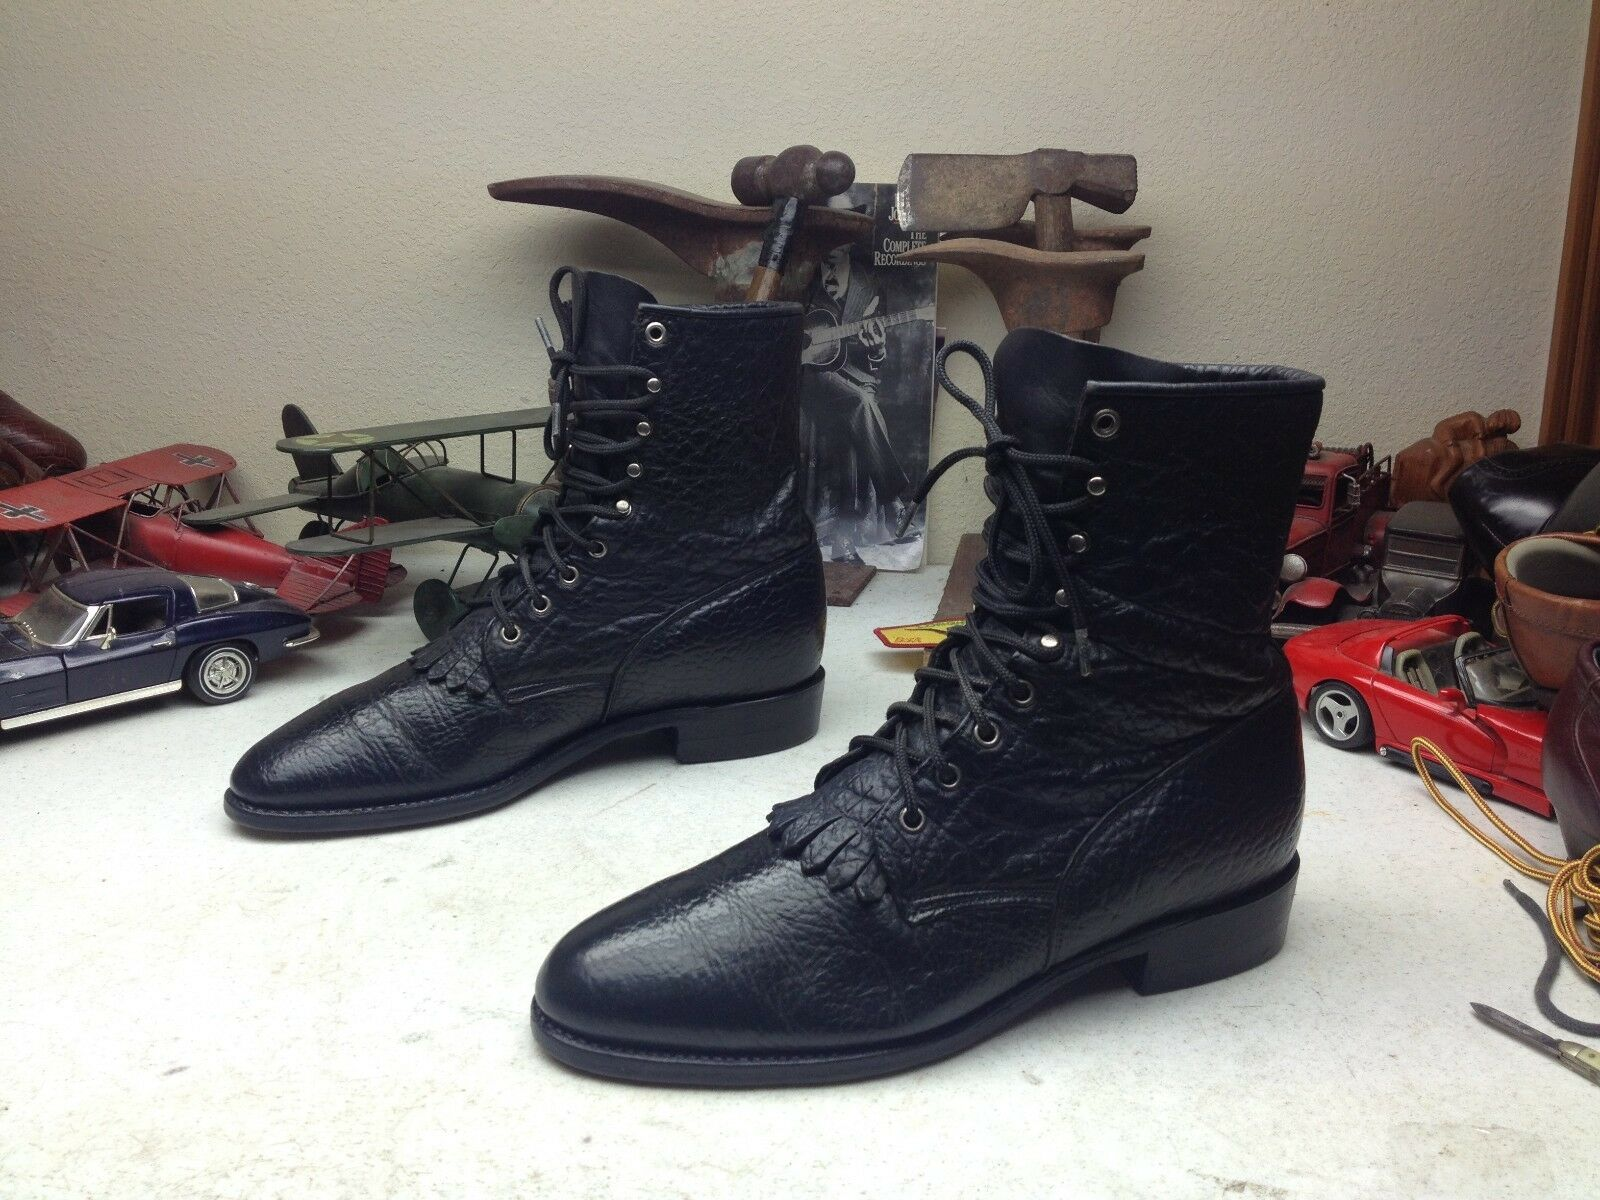 USA JUSTIN schwarz BULL LEATHER LACE UP KILTIE WESTERN WORK WORK WORK RODEO BOSS Stiefel 10 E d28adf